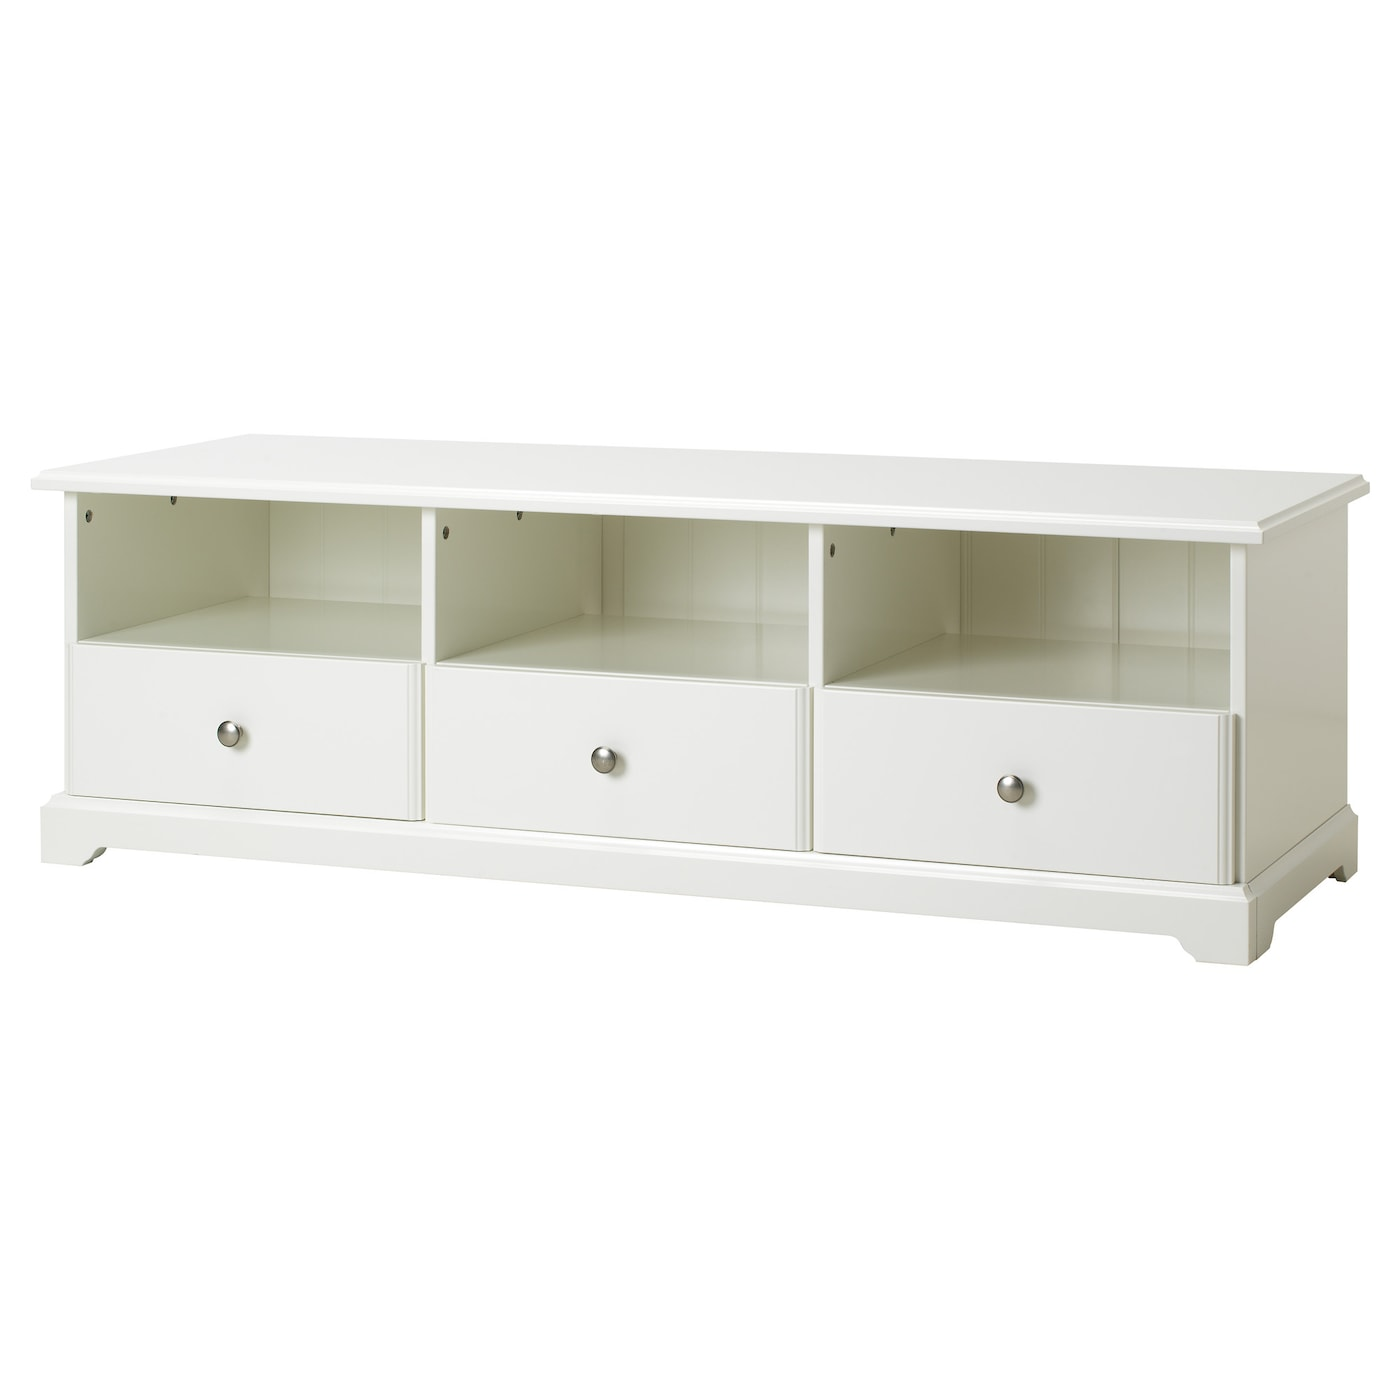 Tv Stands Media Units Ikea Ireland Dublin # Meuble Tv Avec Support Ikea